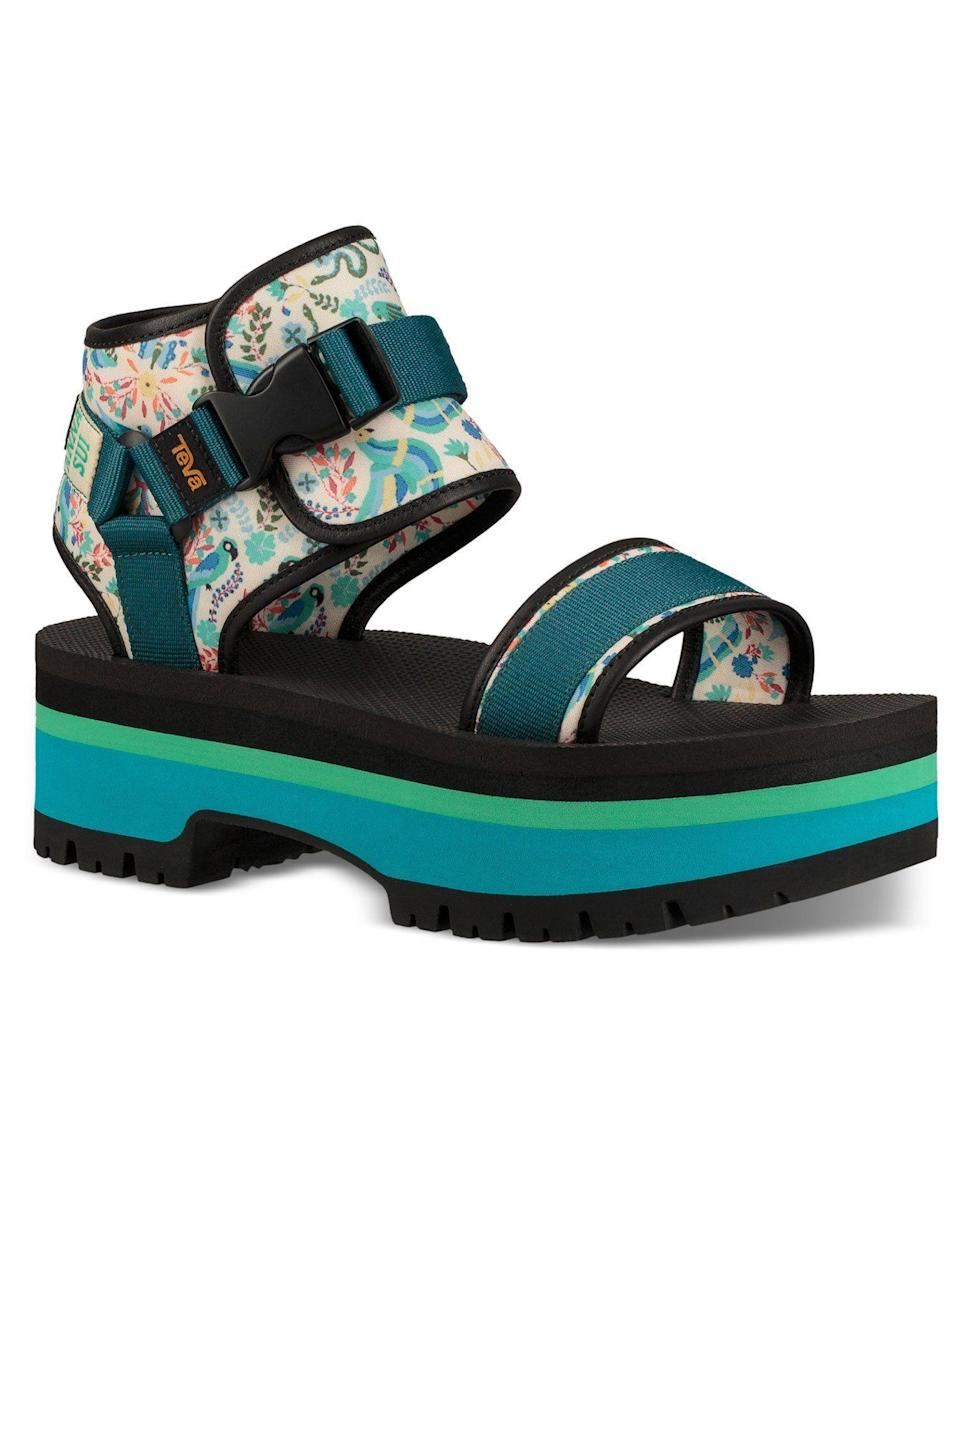 """<p><strong>Teva x Anna Sui</strong></p><p>annasui.com</p><p><strong>$220.00</strong></p><p><a href=""""https://annasui.com/products/teva-x-anna-sui-br-indio-jewell-br"""" rel=""""nofollow noopener"""" target=""""_blank"""" data-ylk=""""slk:Shop Now"""" class=""""link rapid-noclick-resp"""">Shop Now</a></p><p>The Anna Sui and Teva collab is back and girlier than ever for Spring 2021. Before those hit stores, check out this pair from their current offering.</p>"""